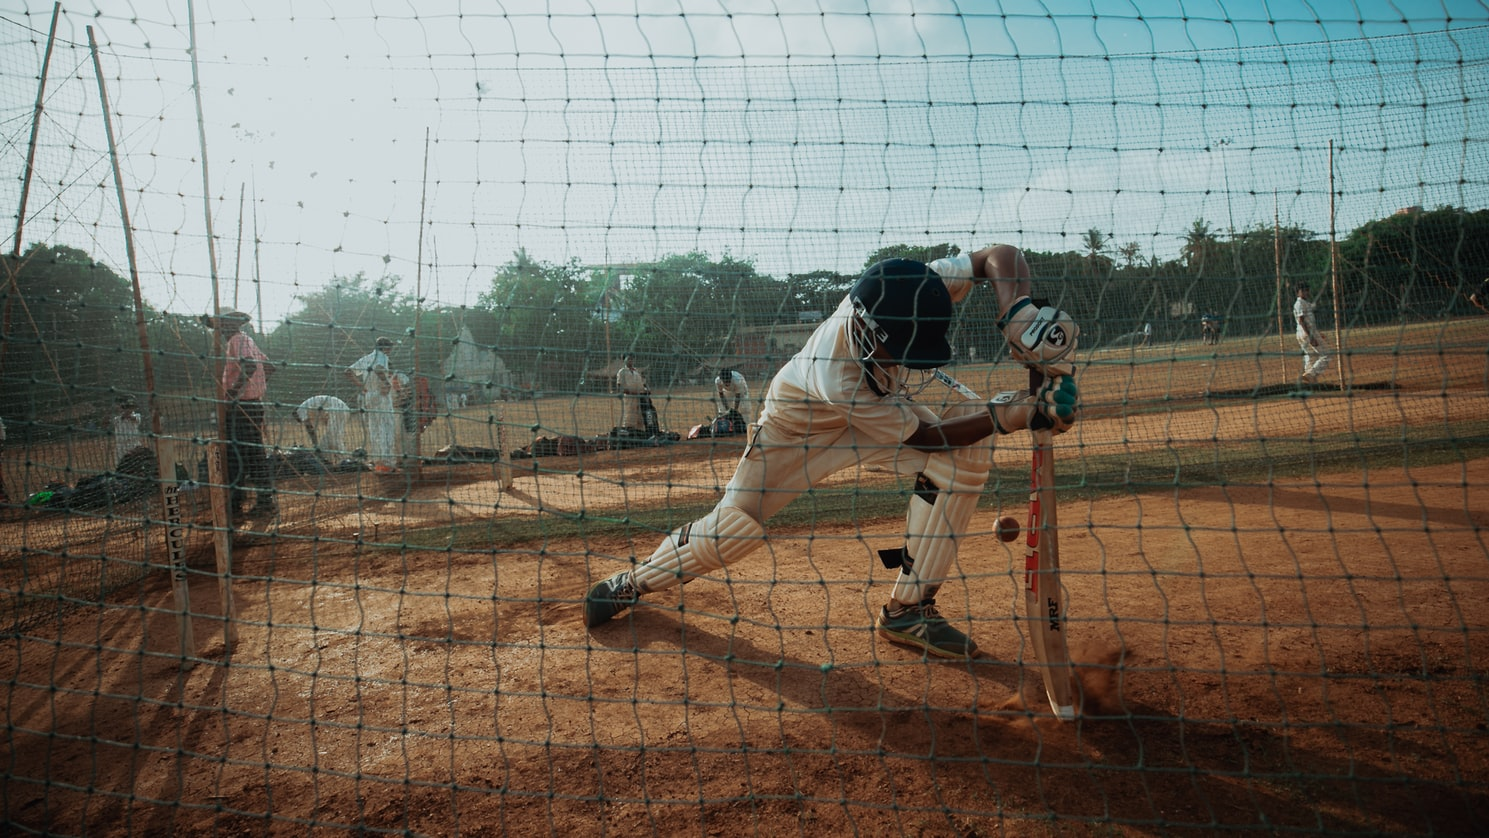 Climate change is destroying cricket, soccer and other sports